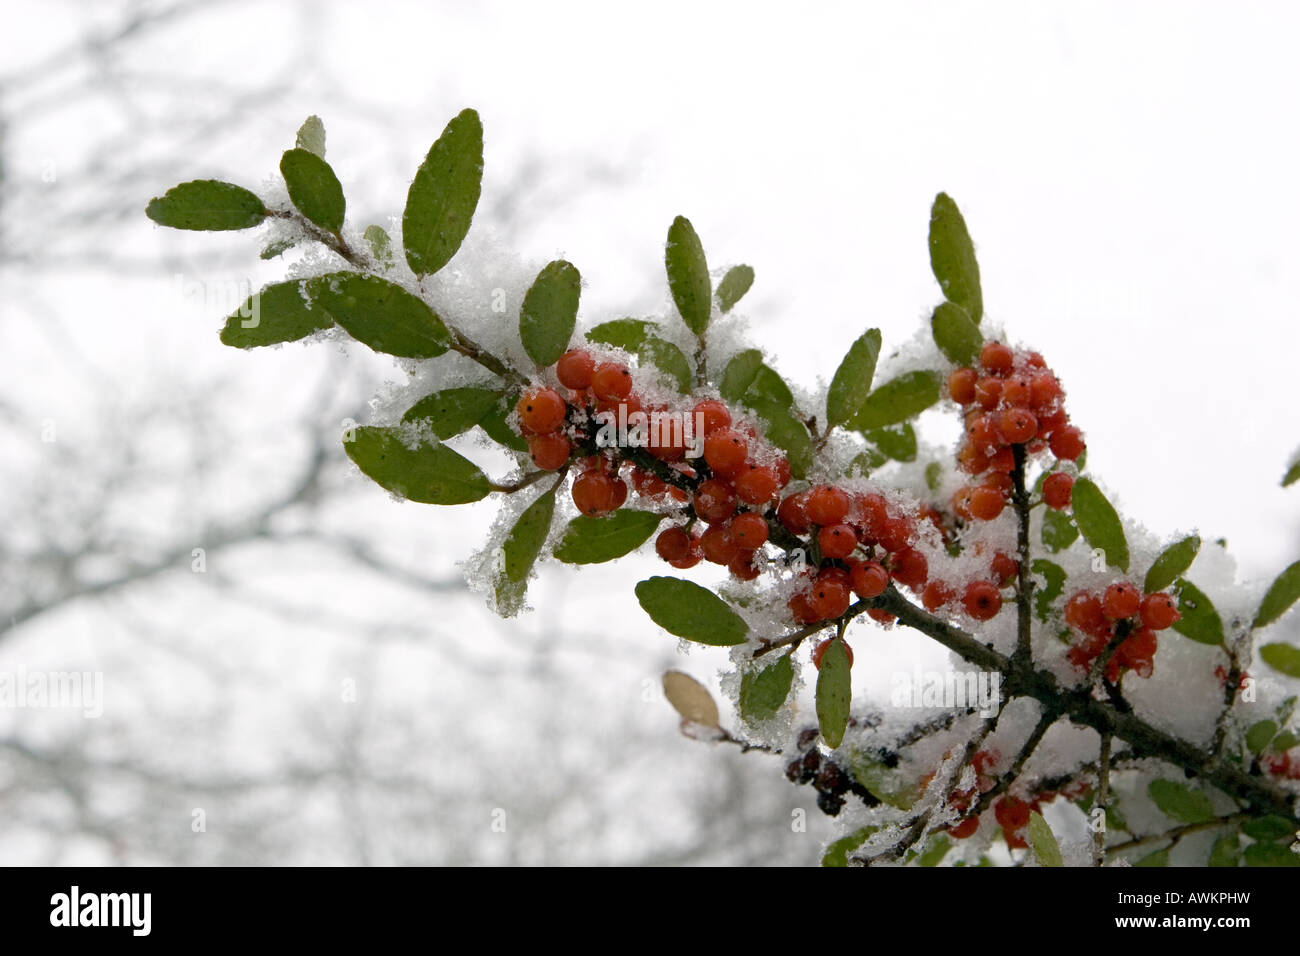 Icy Snow on Yaupon Holly Berries - Stock Image